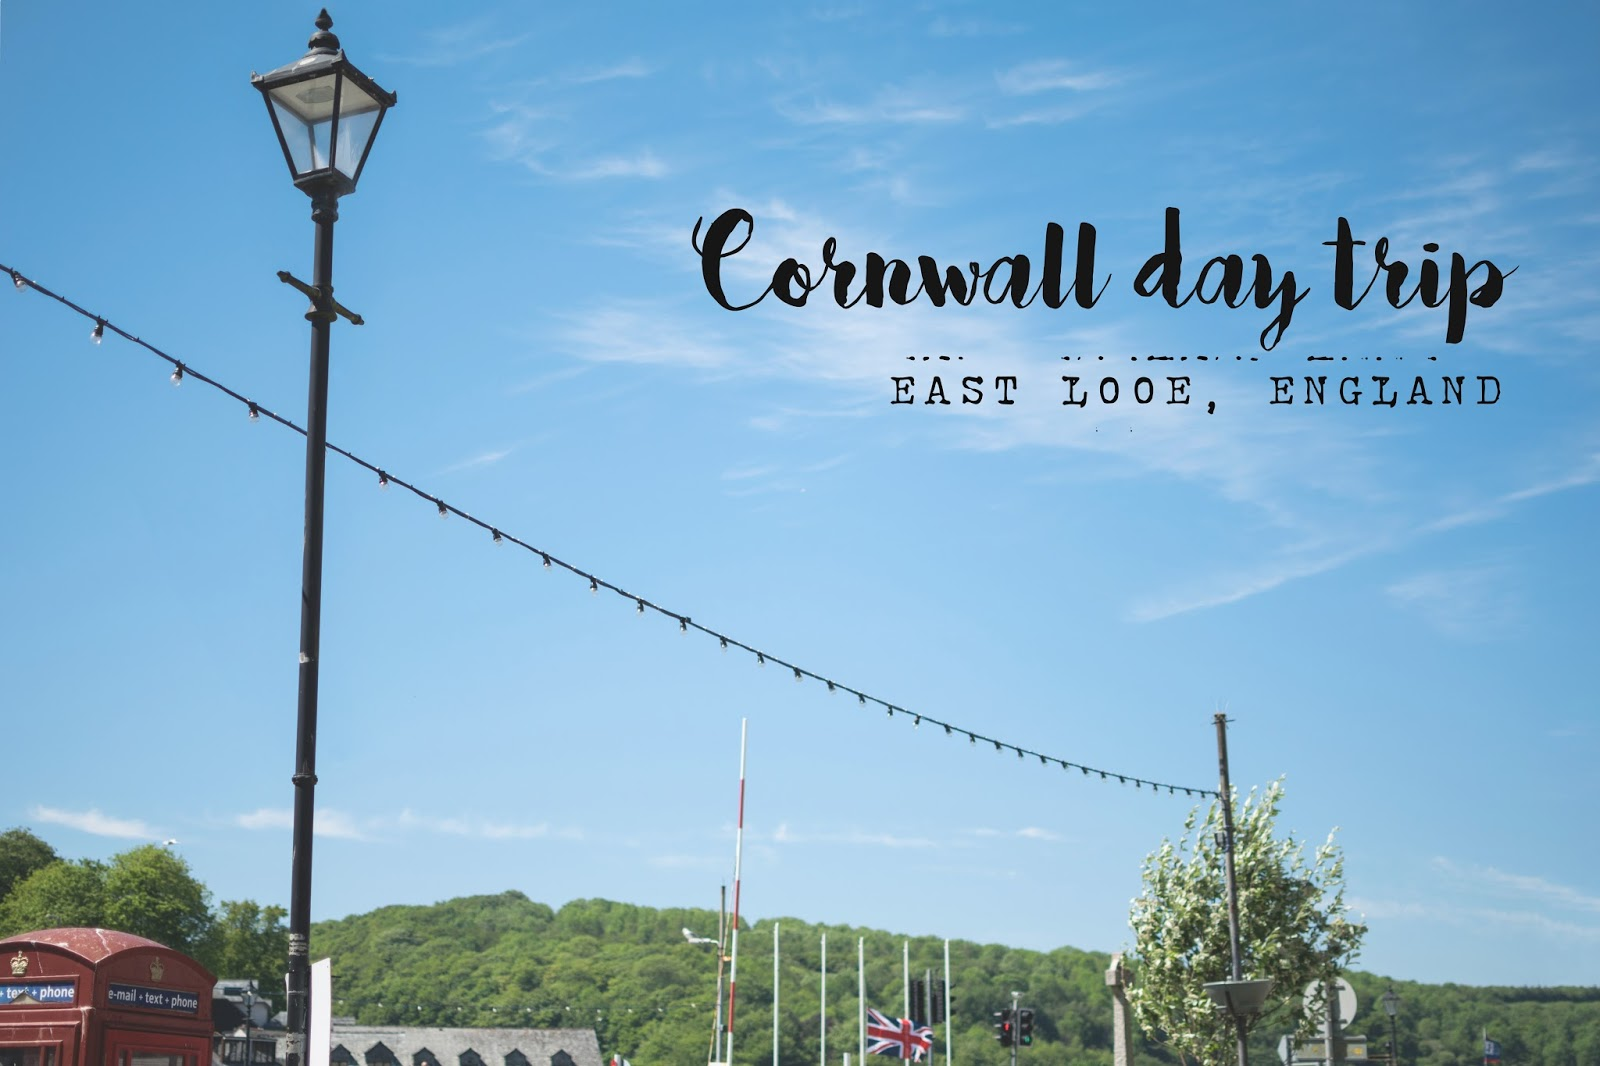 Cornwall day trip - East Looe, England